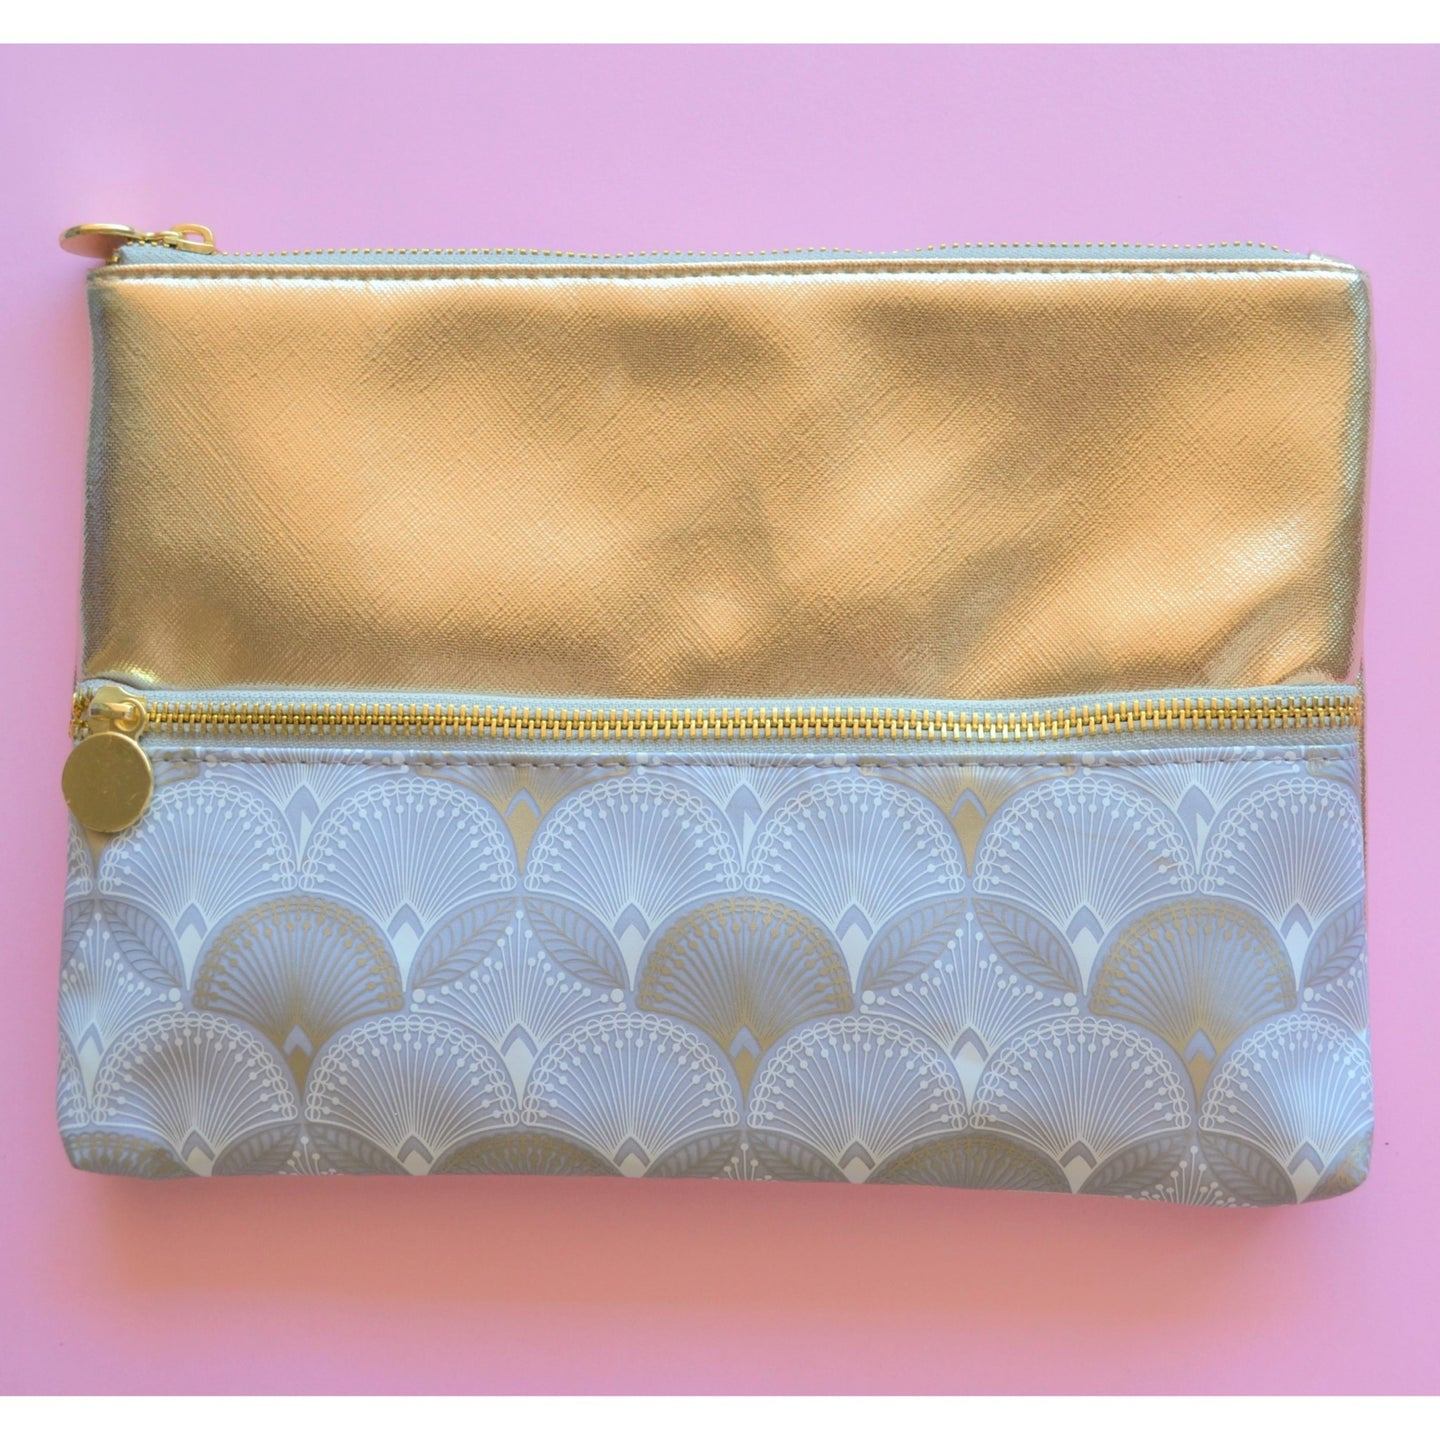 Gold, white and grey Make up and Cosmetic Bag